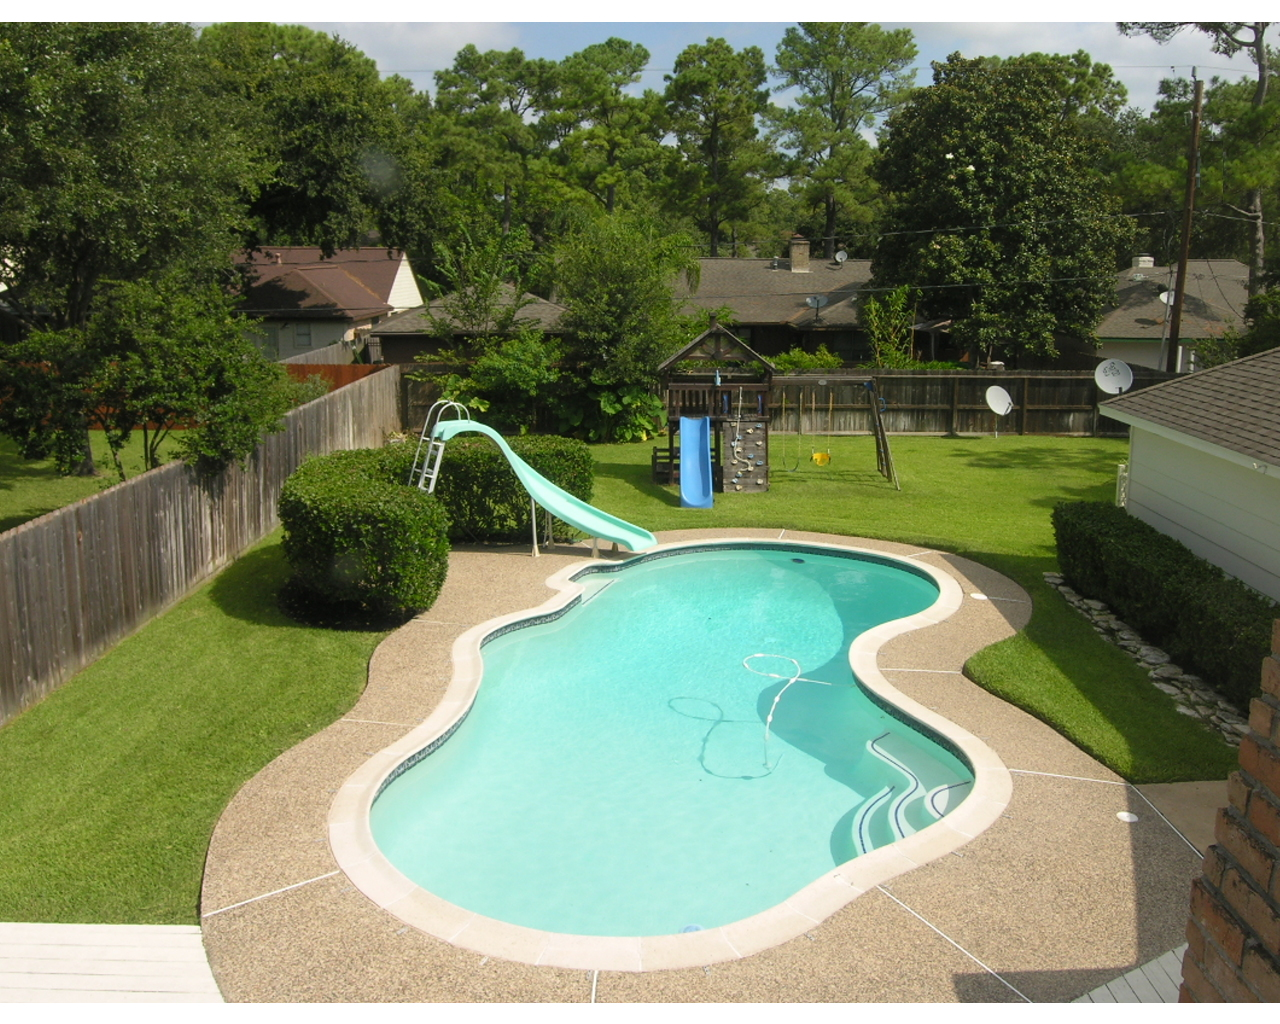 Cool Backyard Pool Designs for Your Outdoor Space: Backyard Pool Designs | Small Backyard Inground Pool Design | Cost Of Infinity Pool